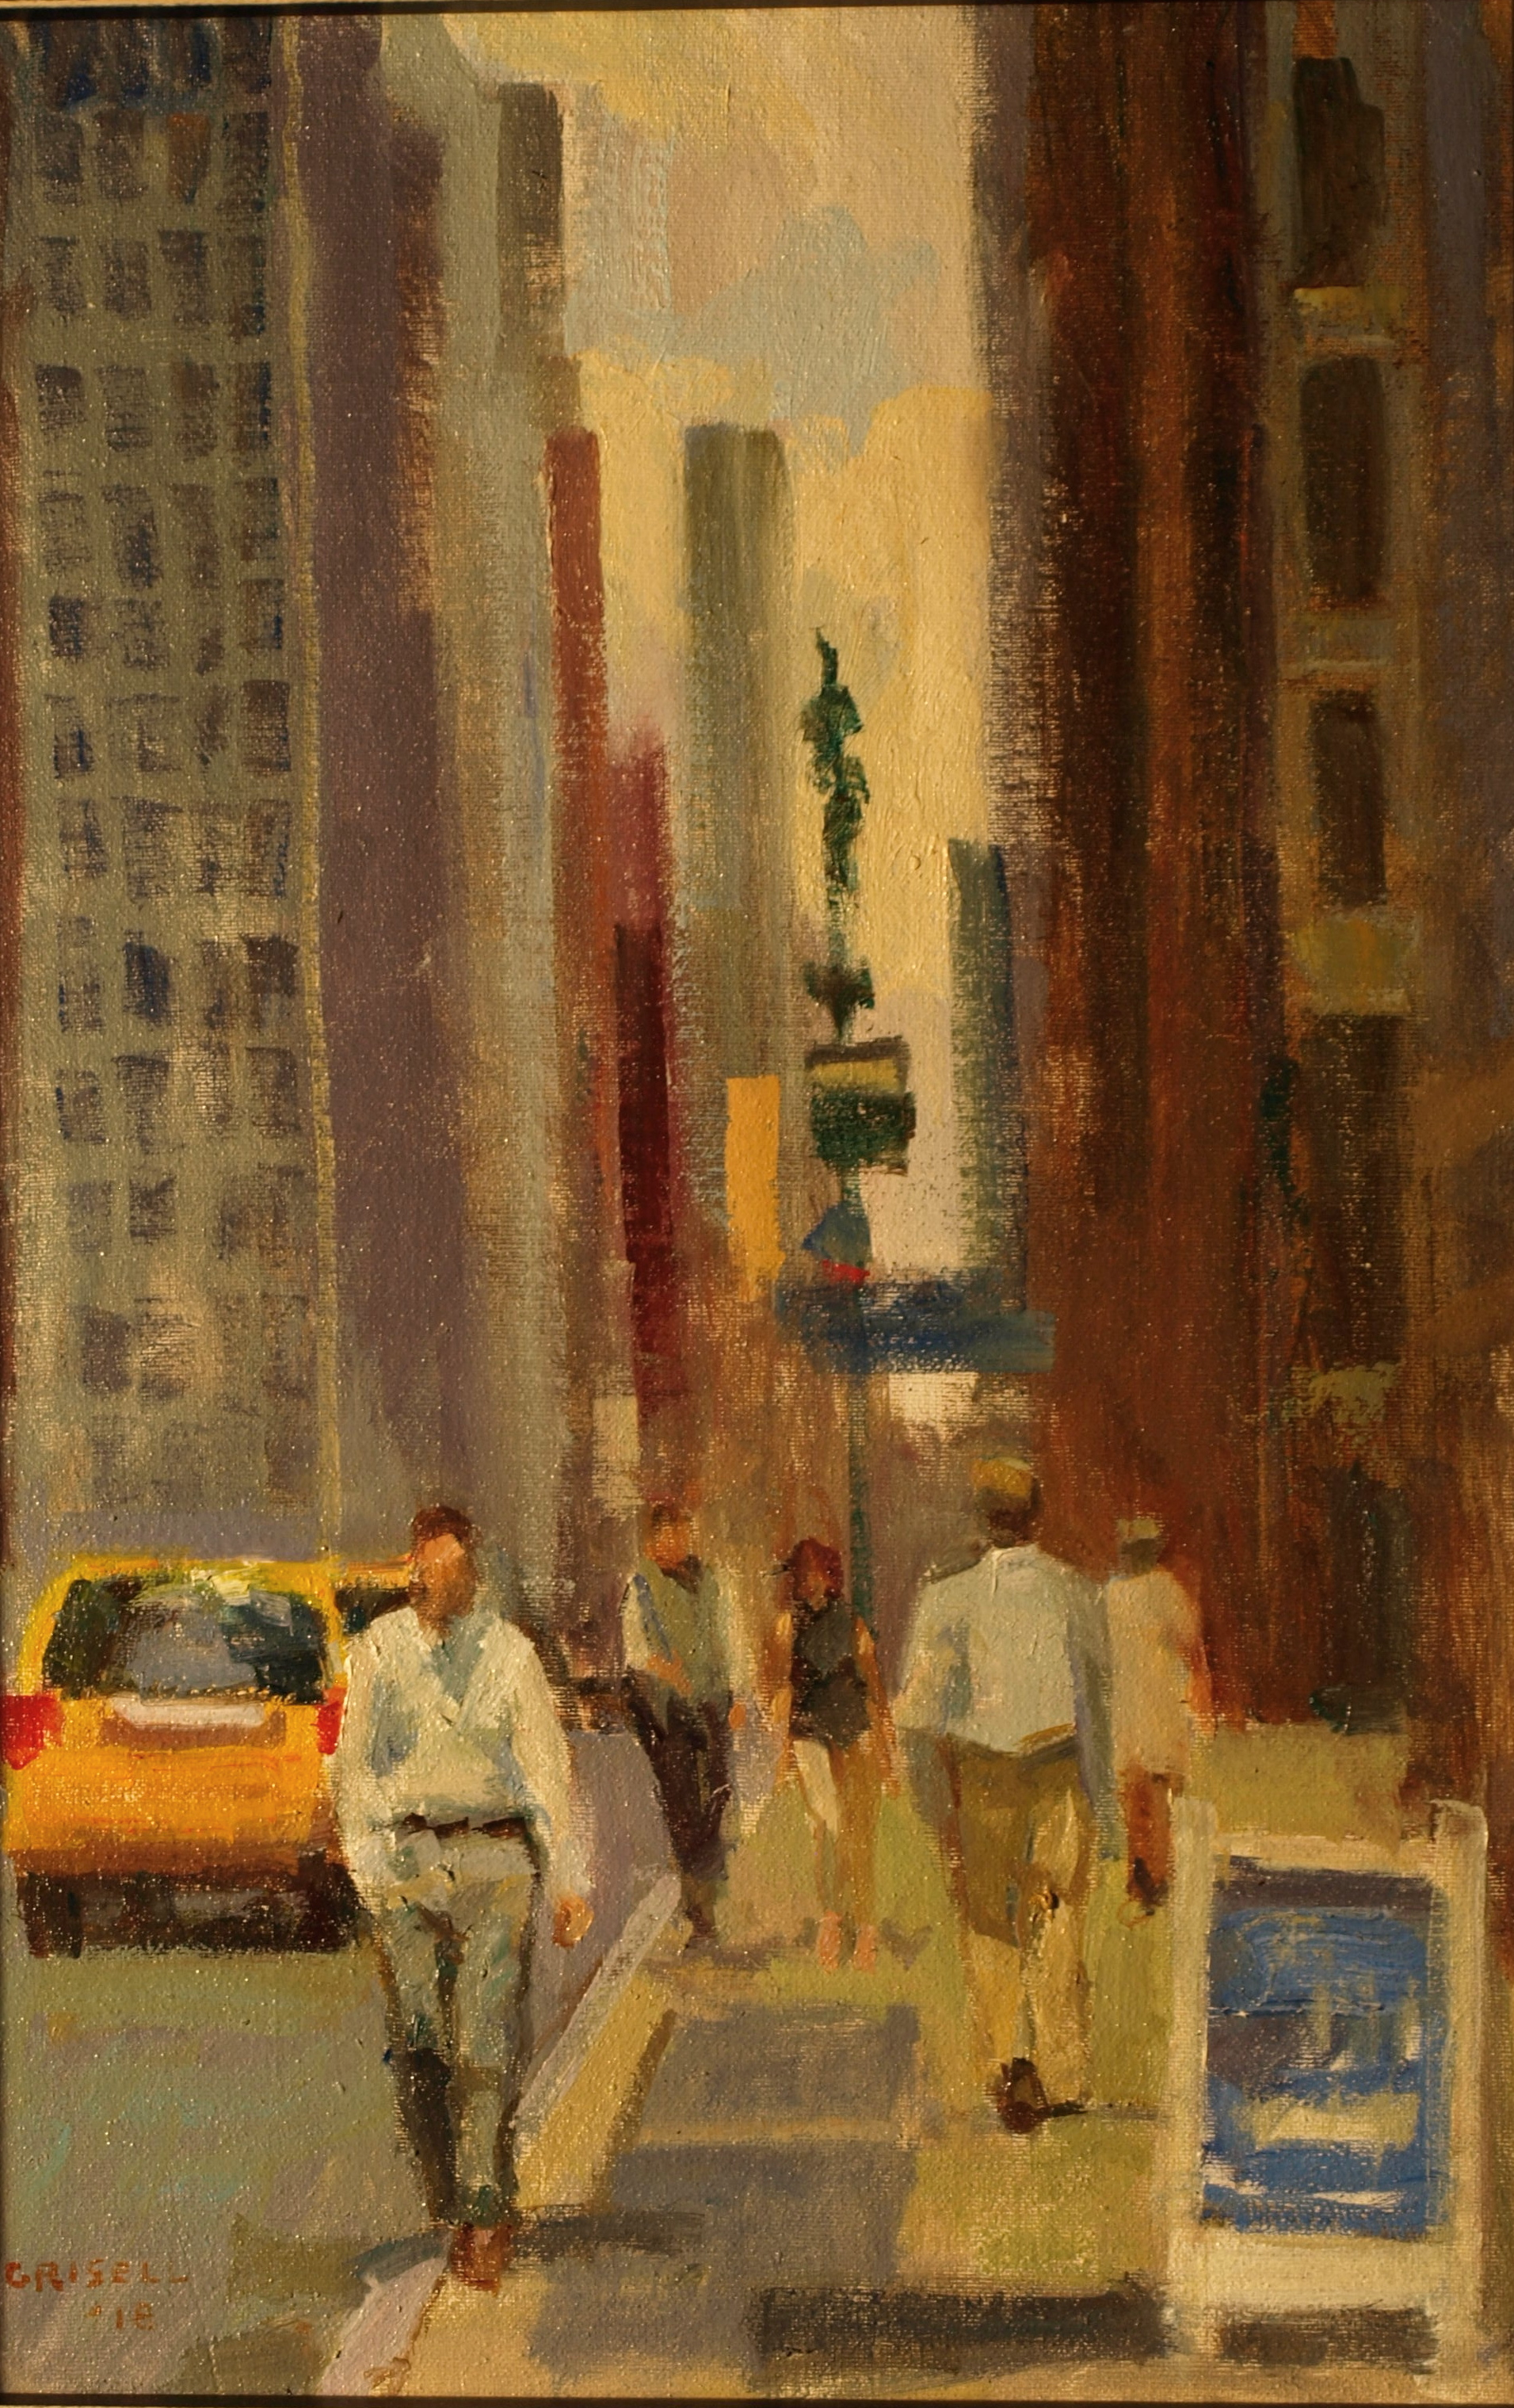 Midtown, Oil on Canvas on Panel, 18 x 12 Inches, by Susan Grisell, $300